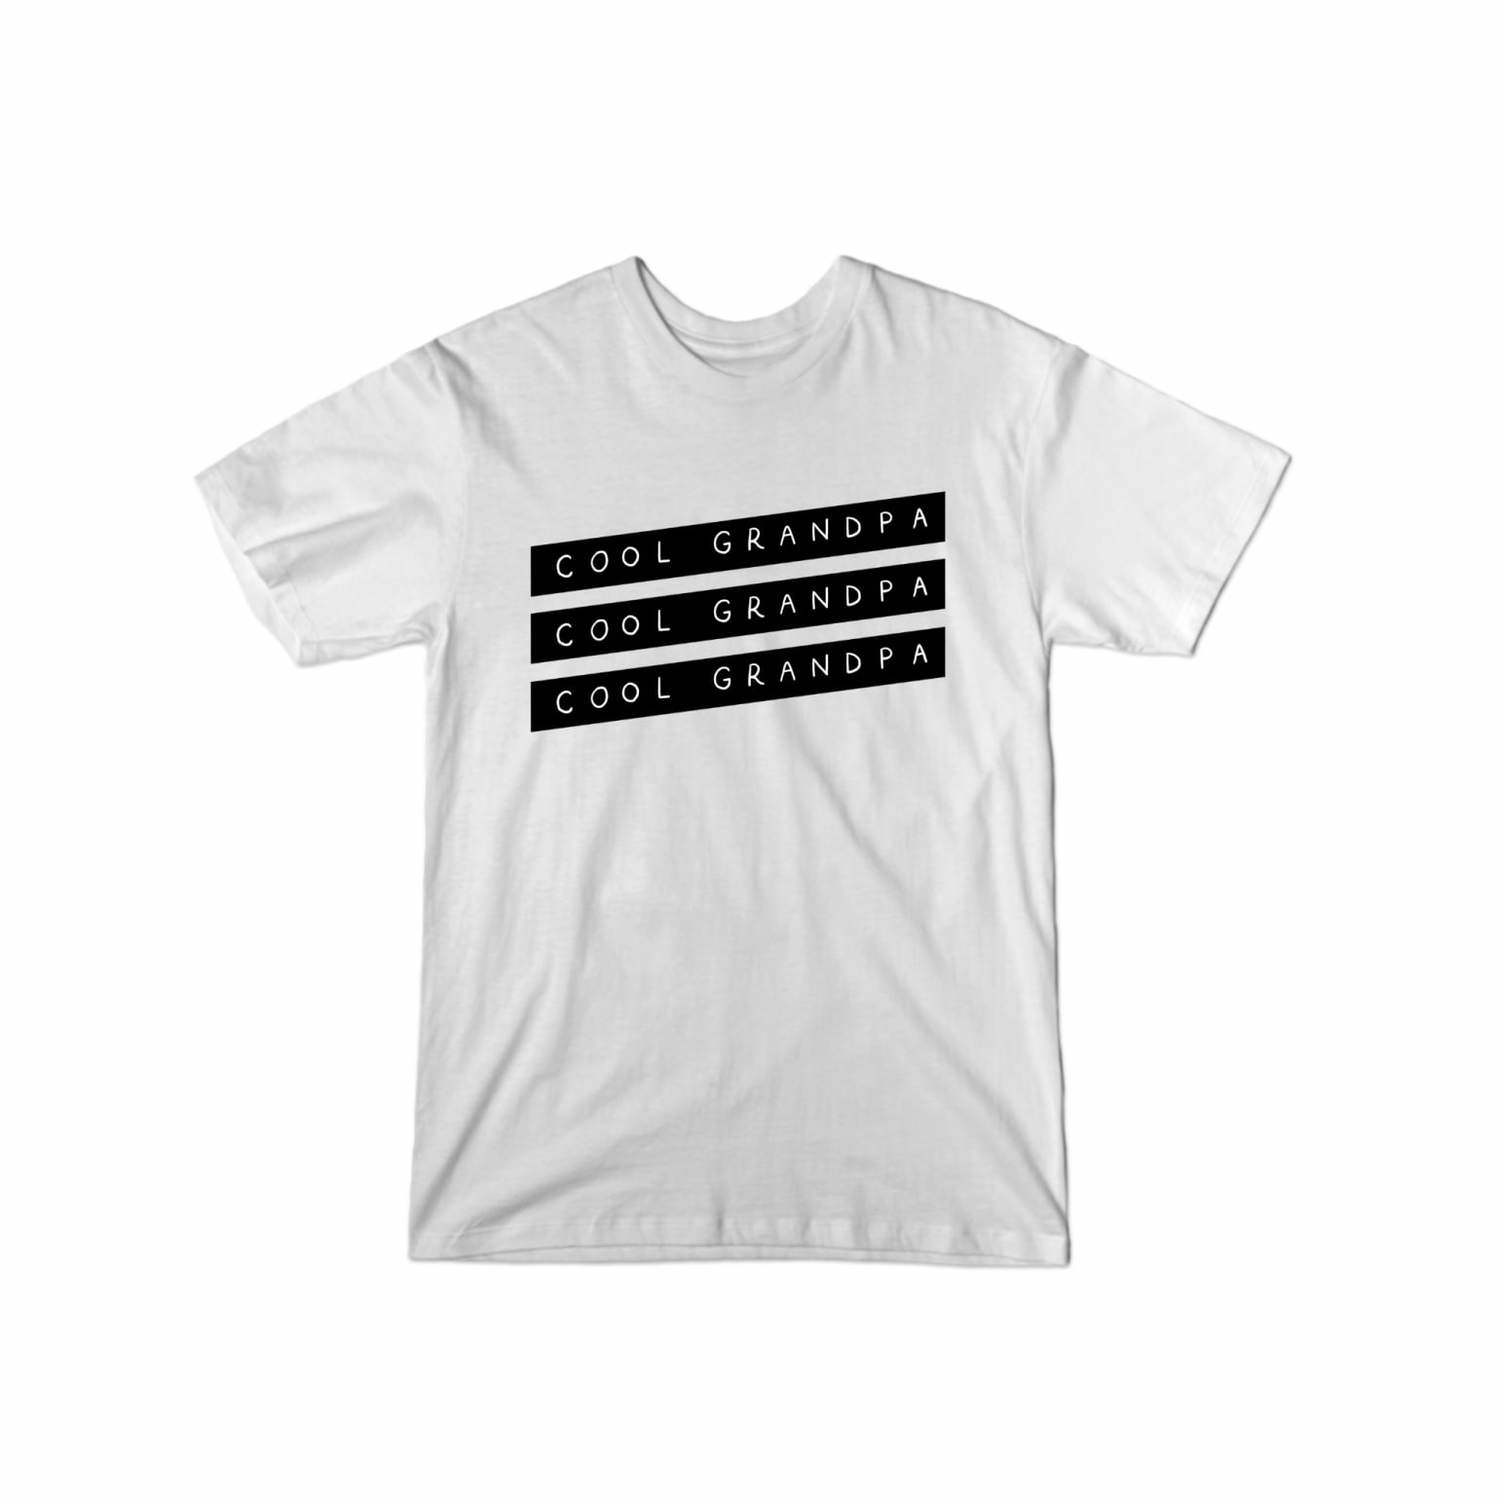 The T-shirt in the color White